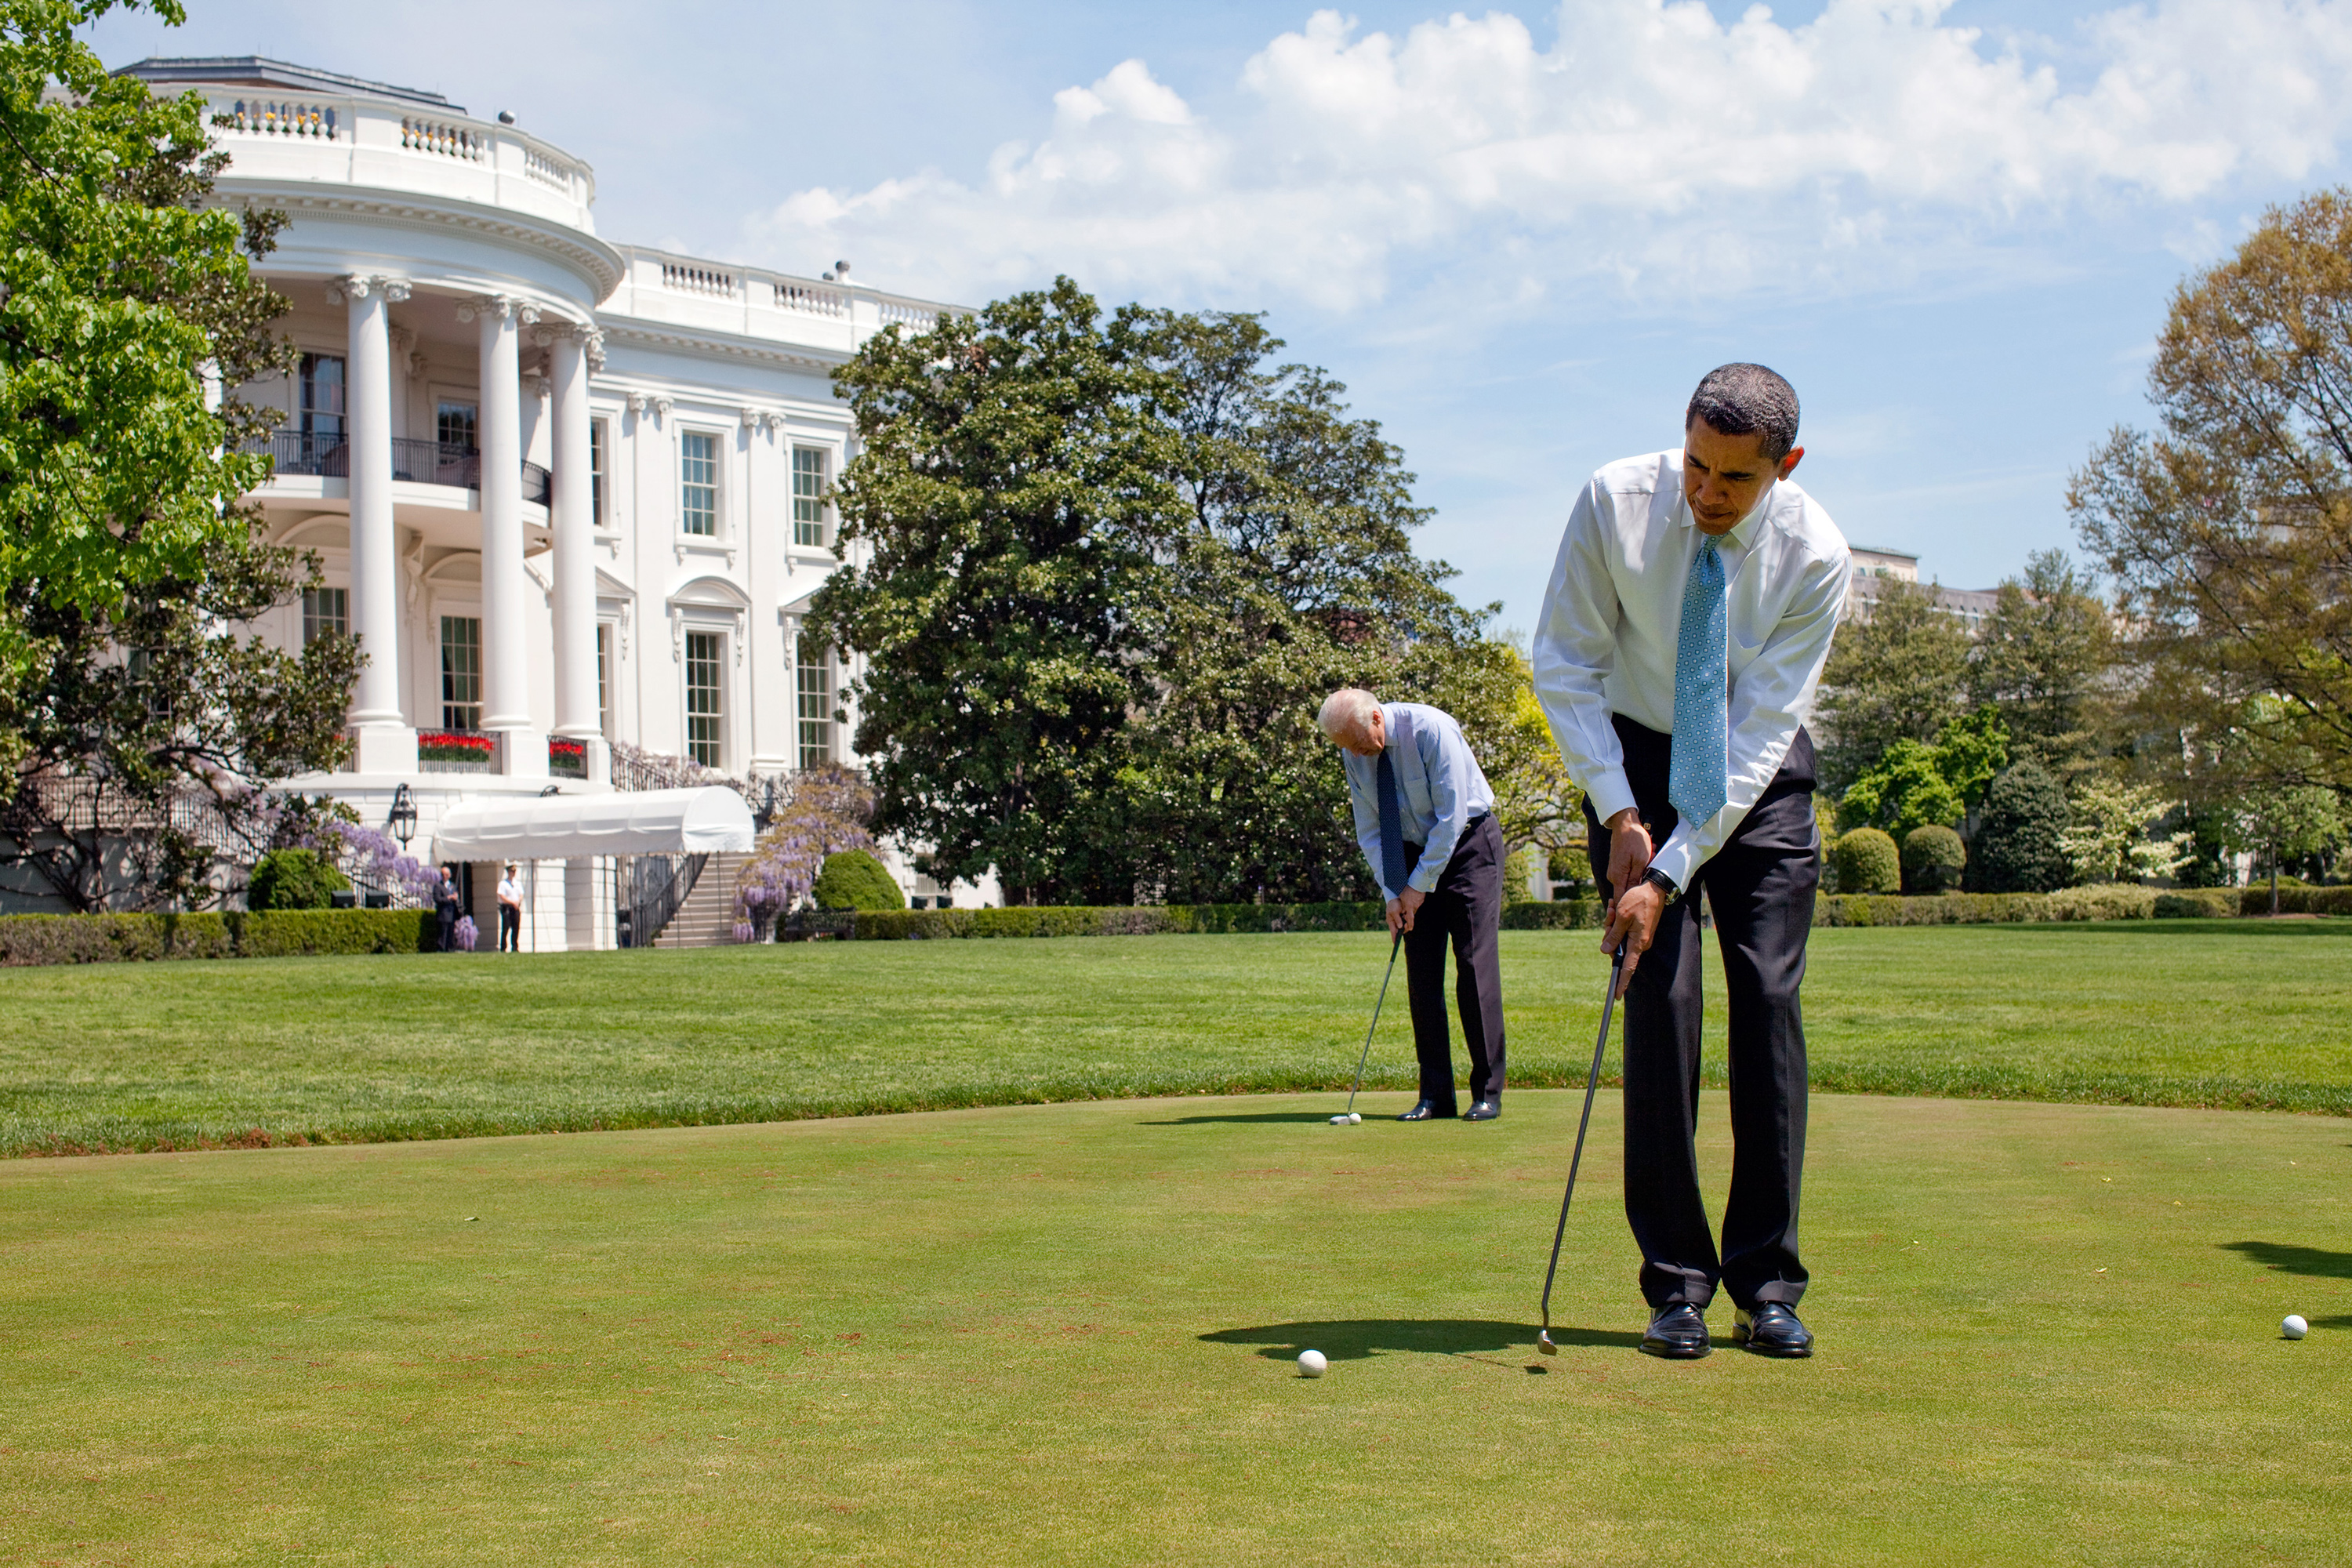 obama-putting-with-biden